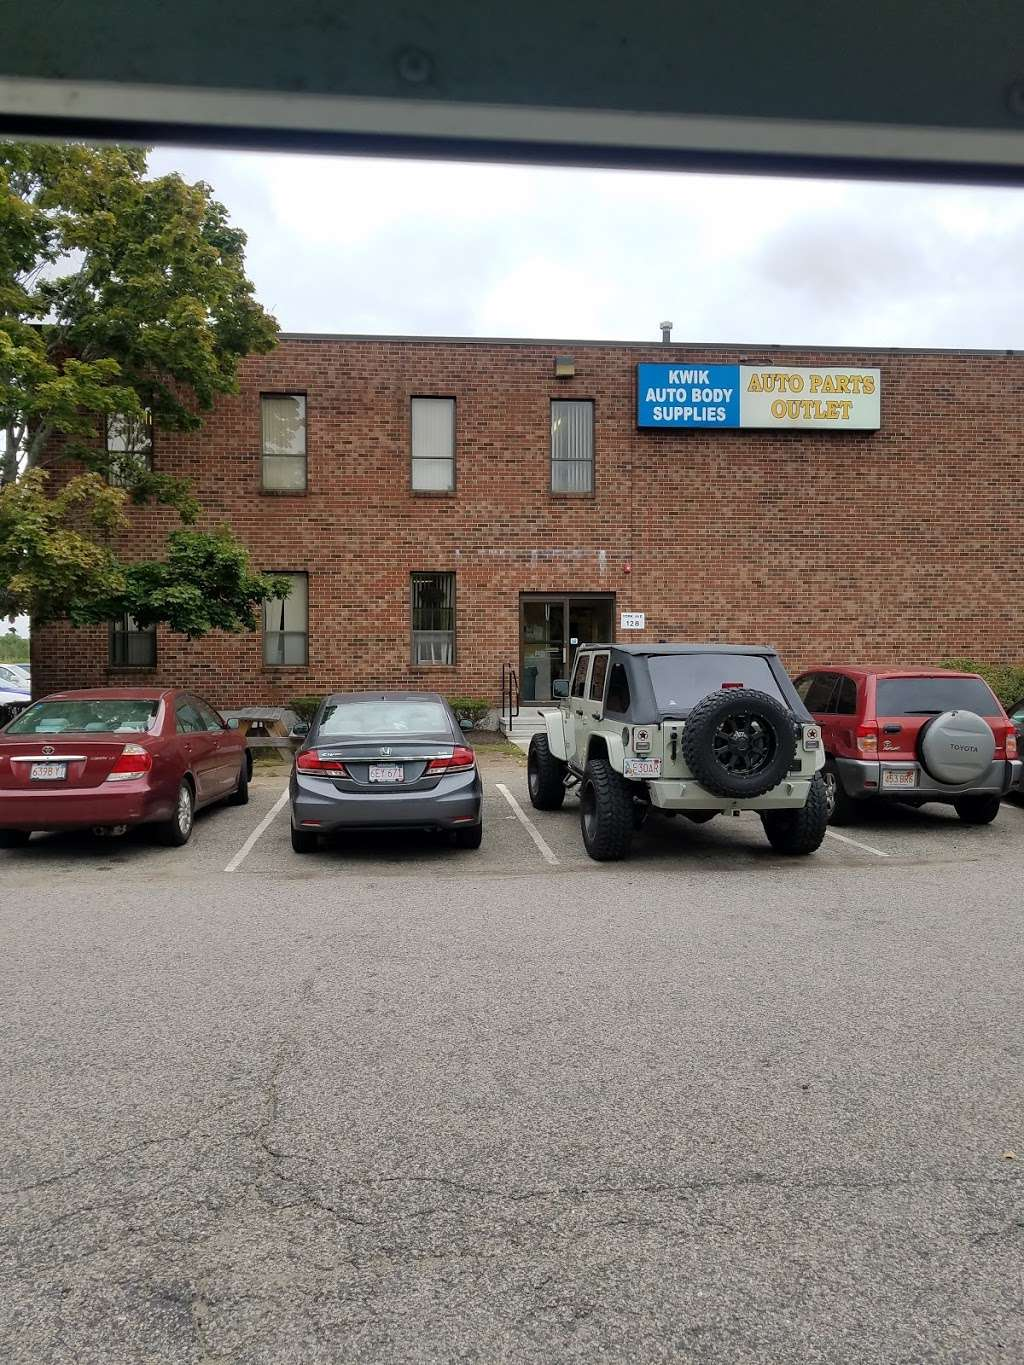 Auto Parts Outlet - car repair  | Photo 9 of 10 | Address: 128 York Ave, Randolph, MA 02368, USA | Phone: (800) 772-5558